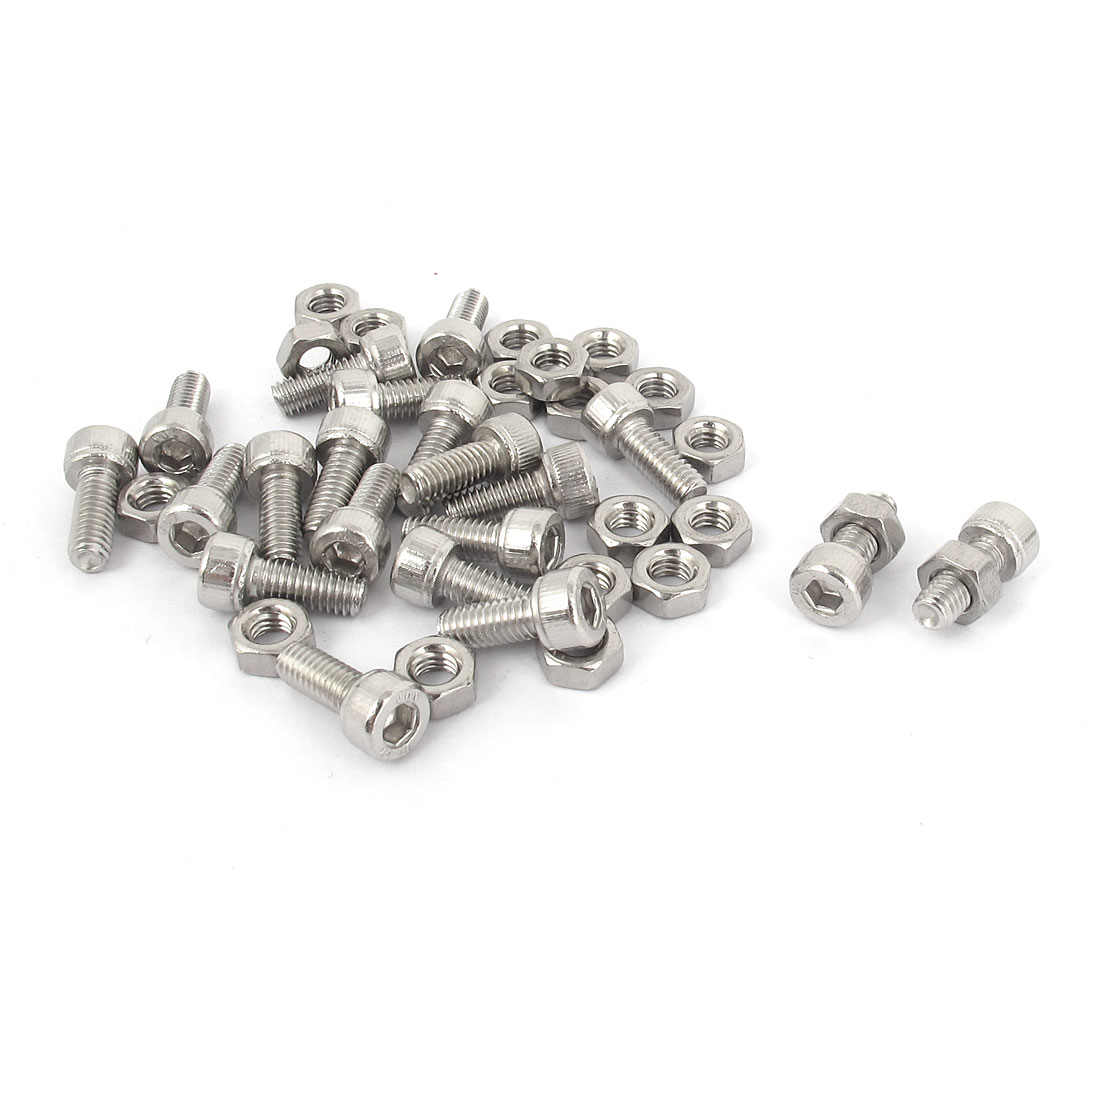 M4x10mm Stainless Steel Hex Socket Head Knurled Cap Screws Bolts Nut Set 20Pcs